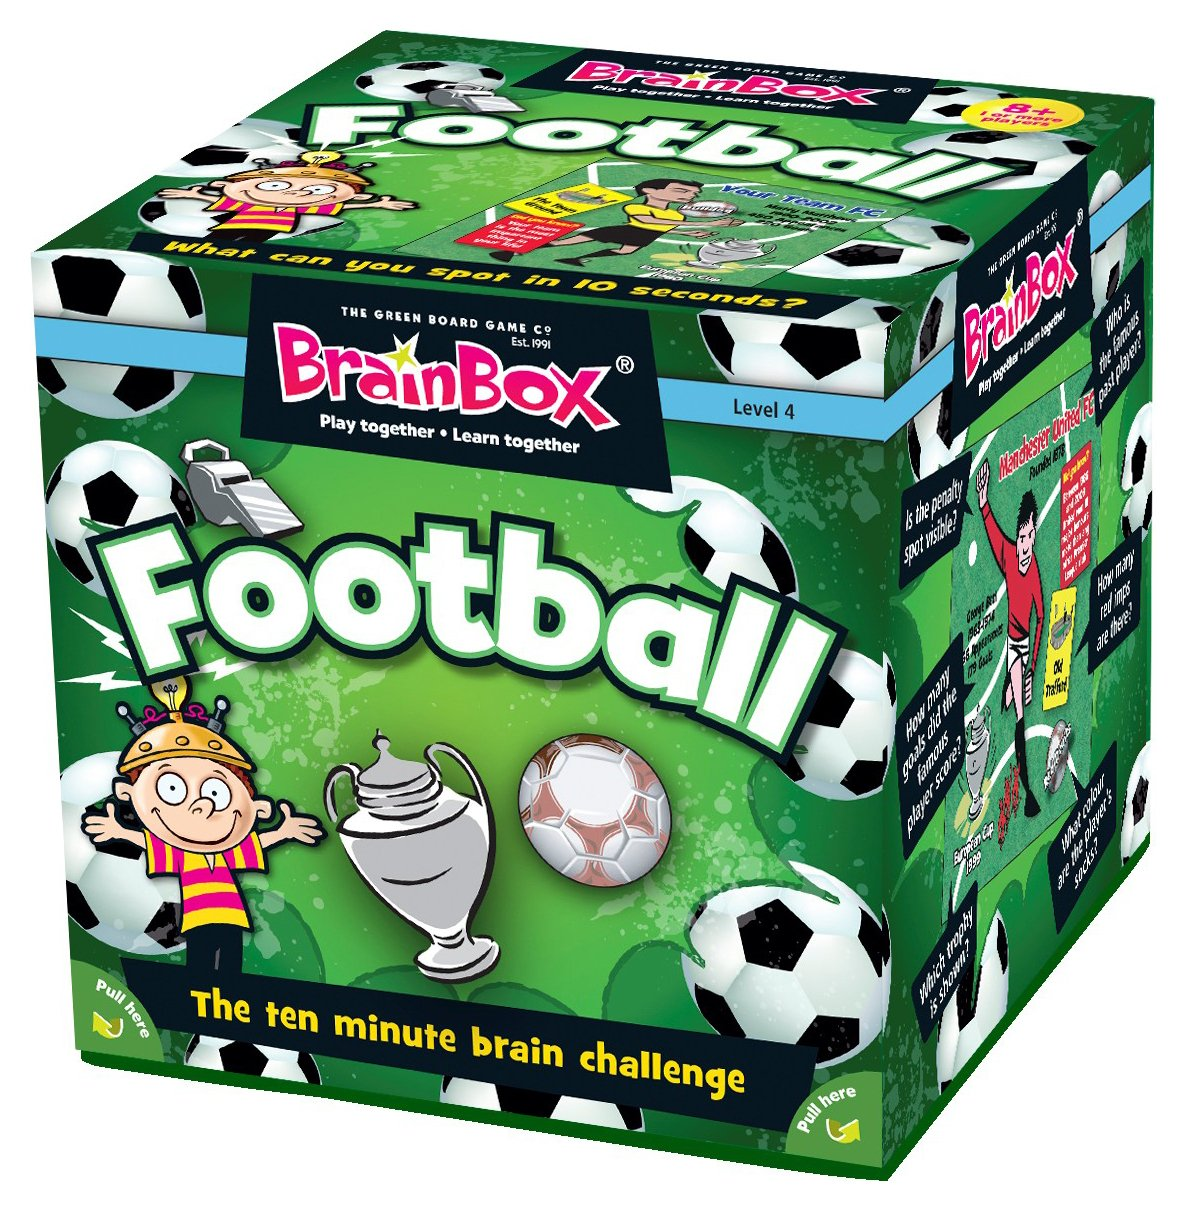 Image of Brainbox Football Quiz Game.